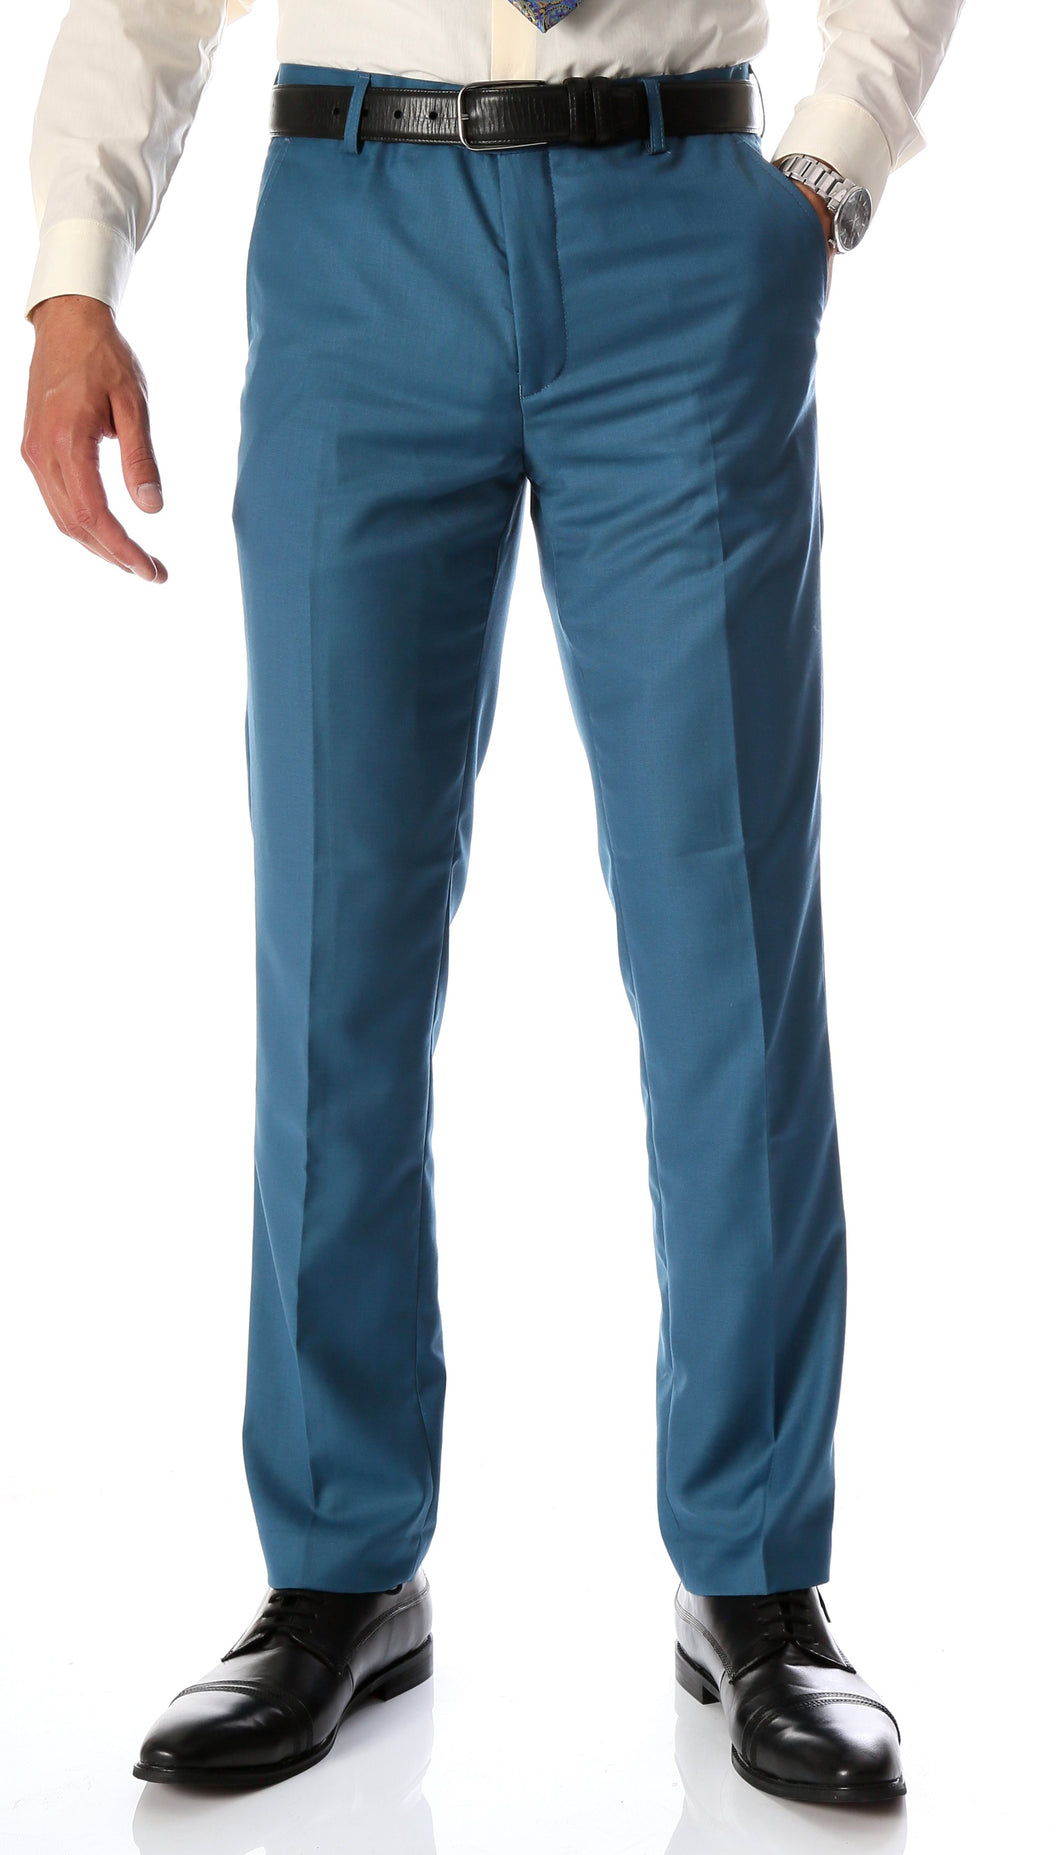 Ferrecci Men's Halo Teal Slim Fit Flat-Front Dress Pants - Ferrecci USA